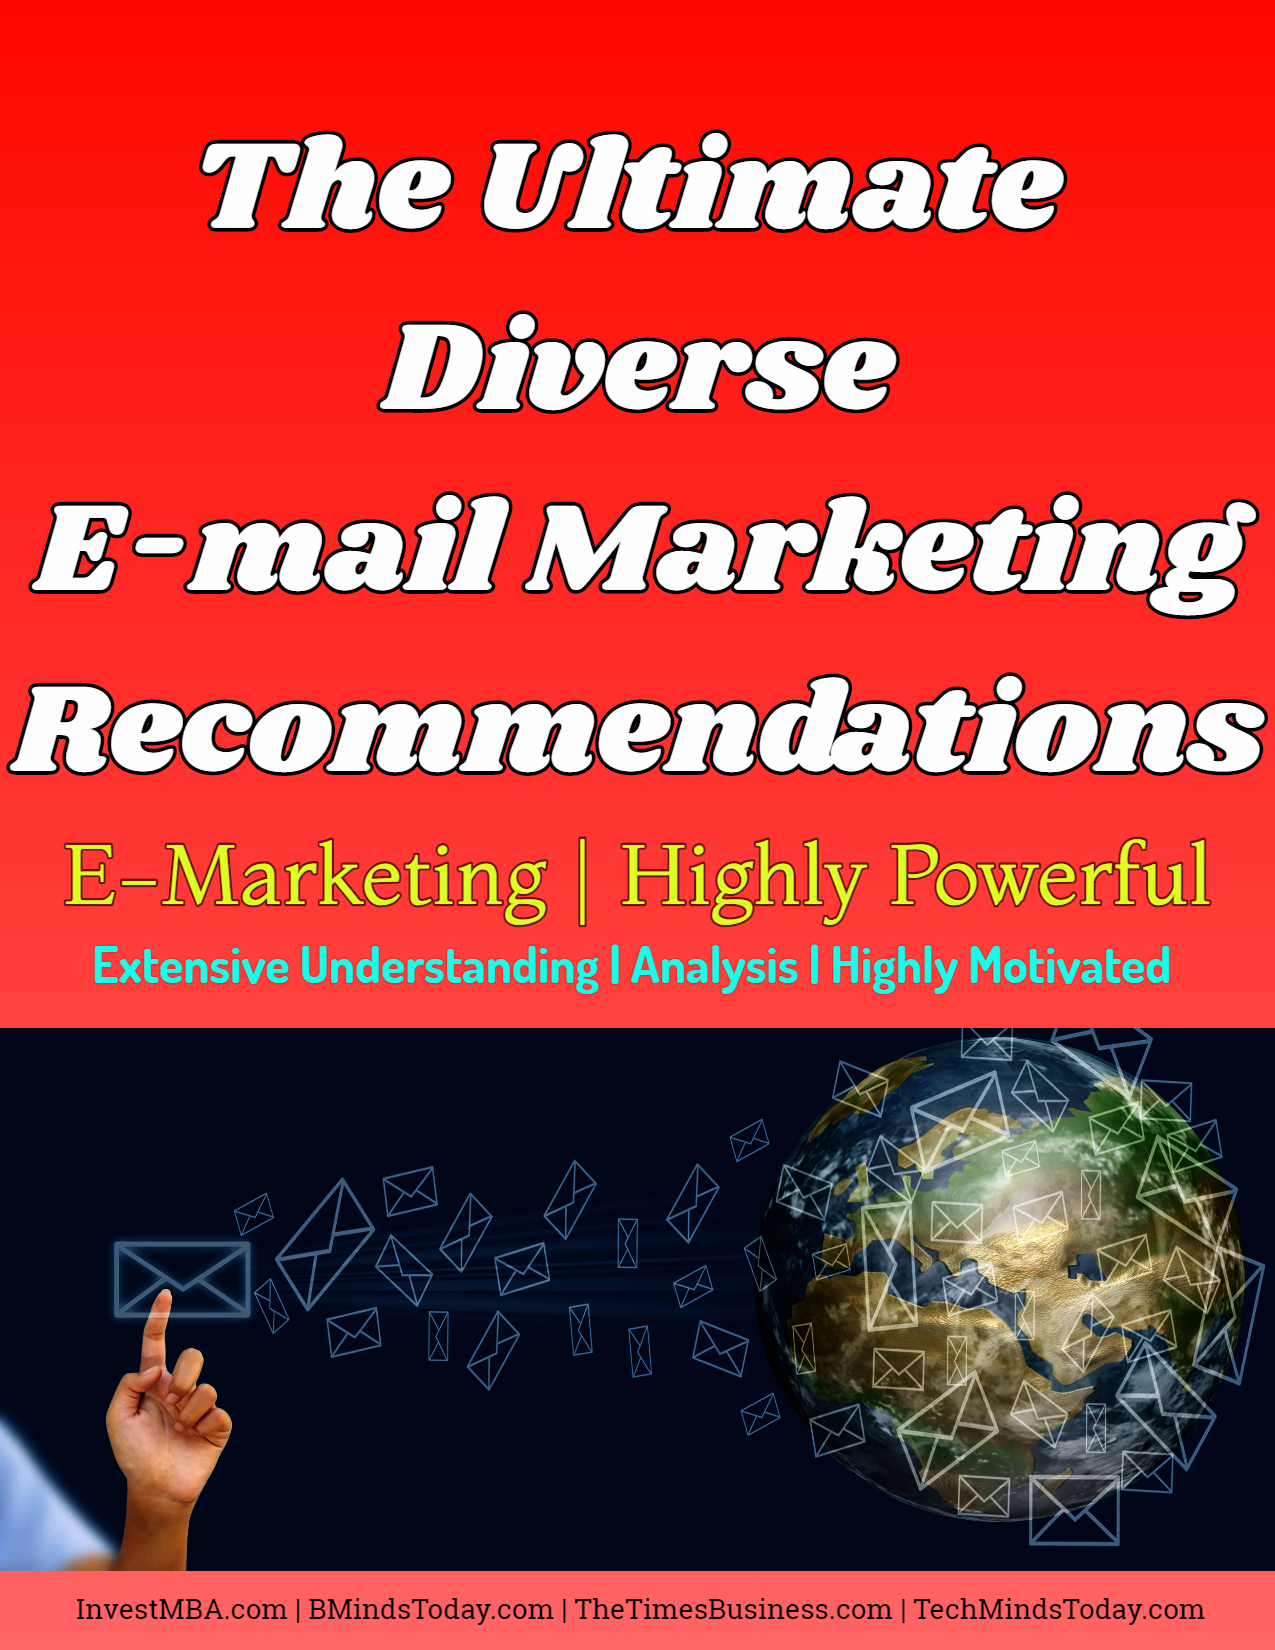 The Ultimate Diverse E-mail Marketing Recommendations | Highly Powerful  E-mail Marketing The Ultimate Diverse E-mail Marketing Recommendations | Highly Powerful The Ultimate Diverse E mail Marketing Recommendations Highly Powerful